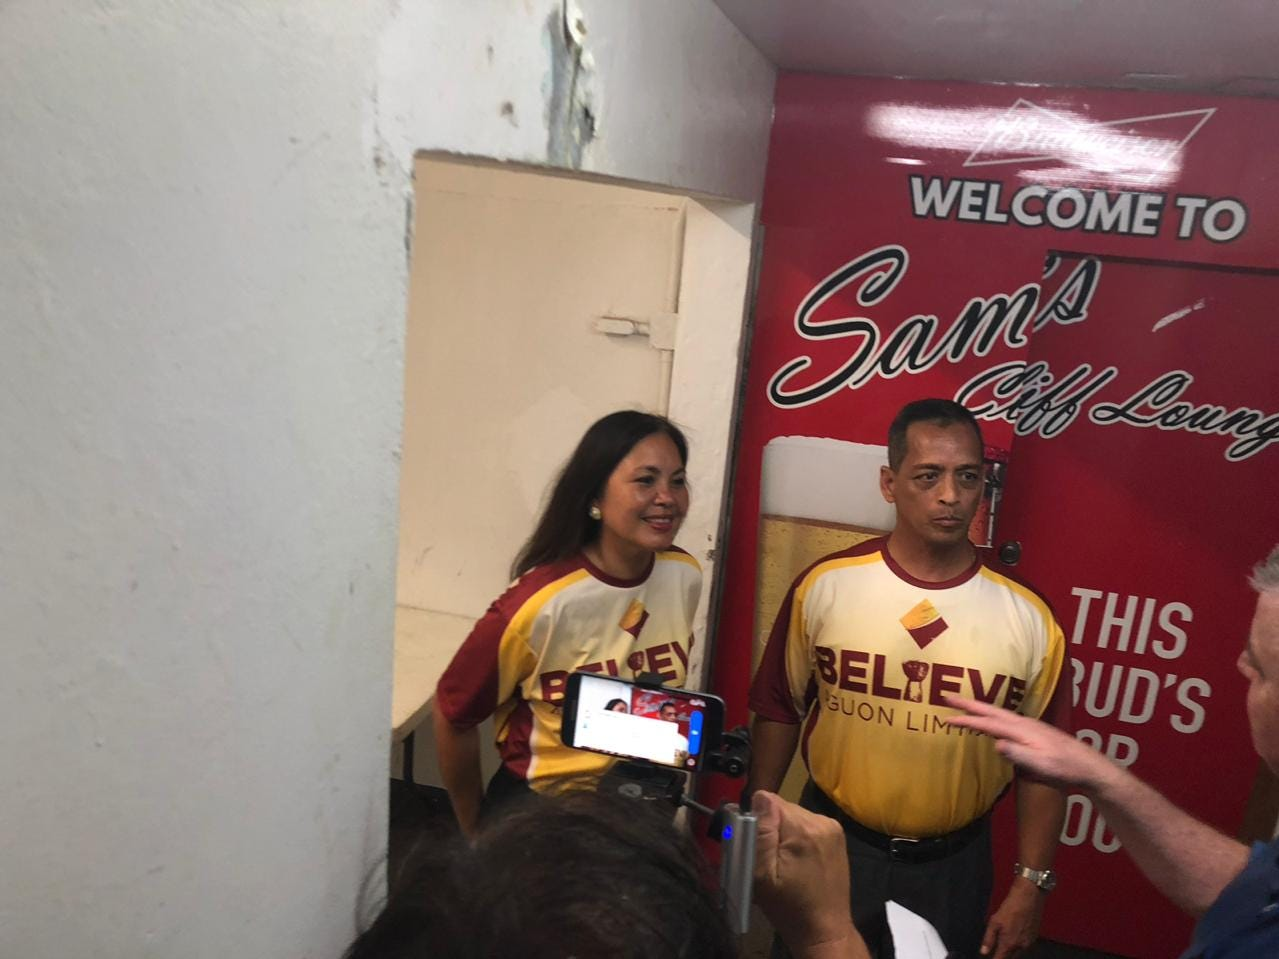 Write-in candidates Frank Aguon Jr and Alicia Limtiaco arrive at their election night headquarters at the Cliff Hotel in Agana Heights.